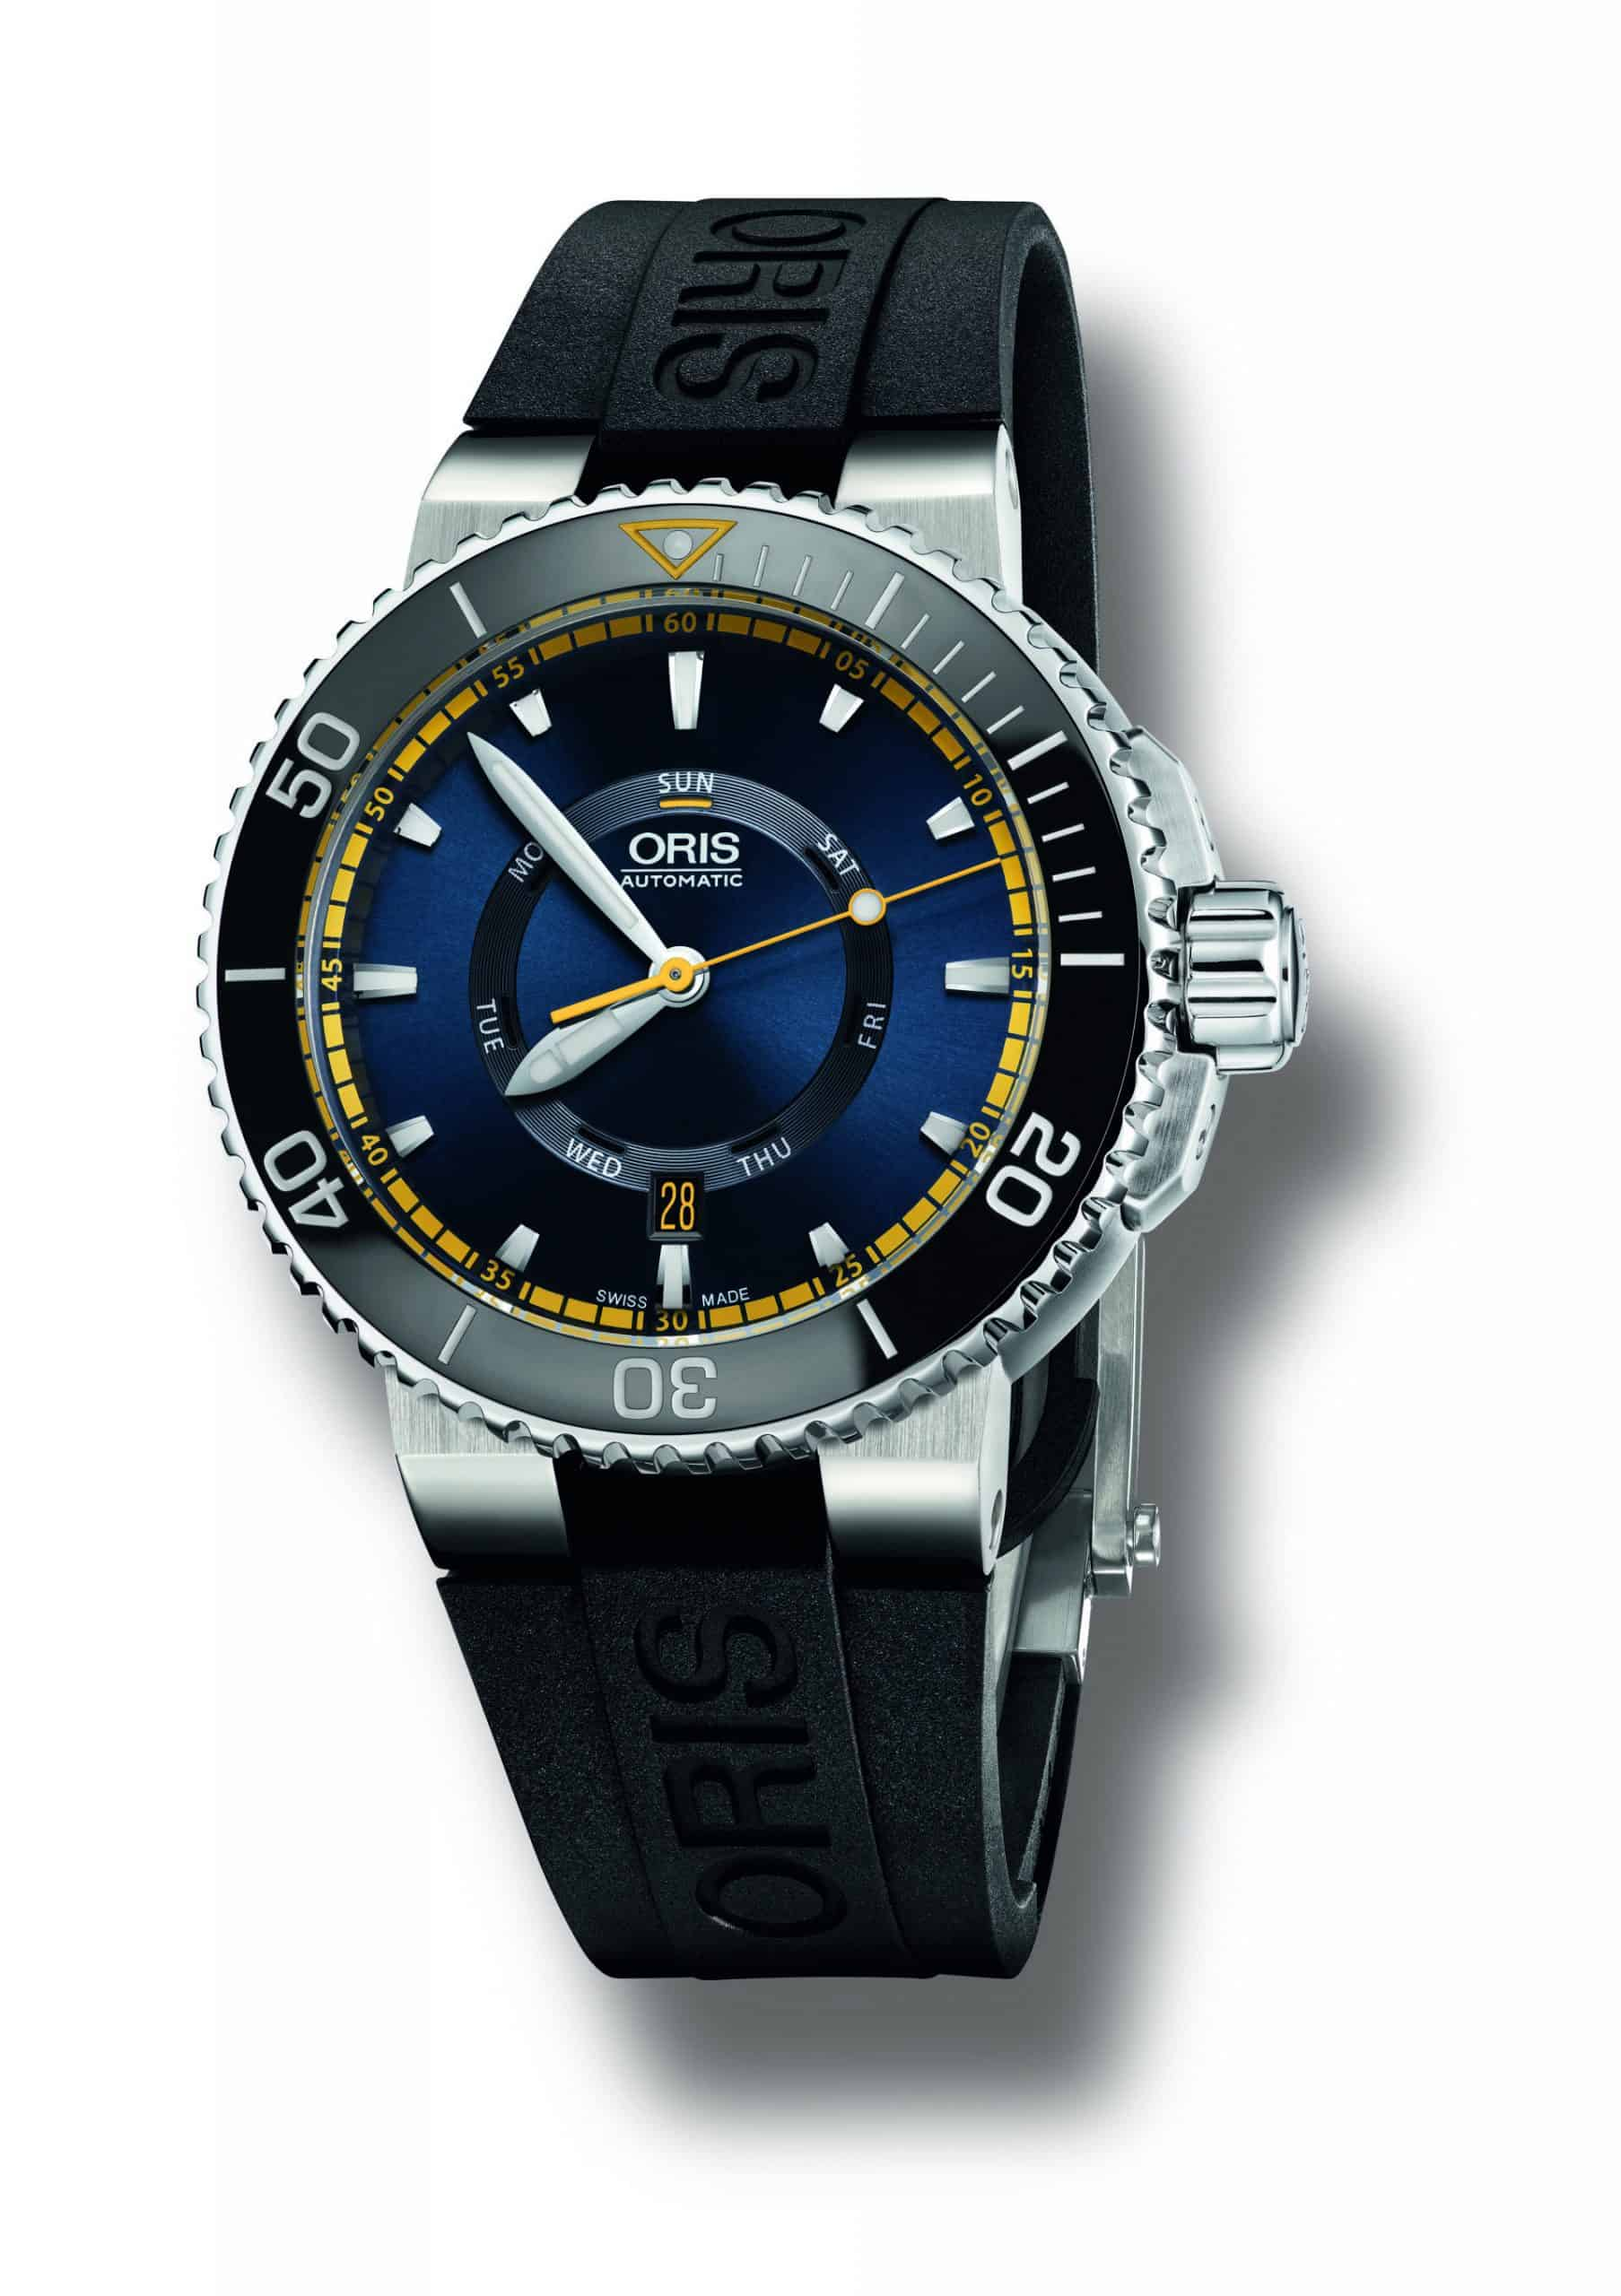 08 Oris Great Barrier Reef Limited Edition II Images 01 735 7673 4185 RS scaled